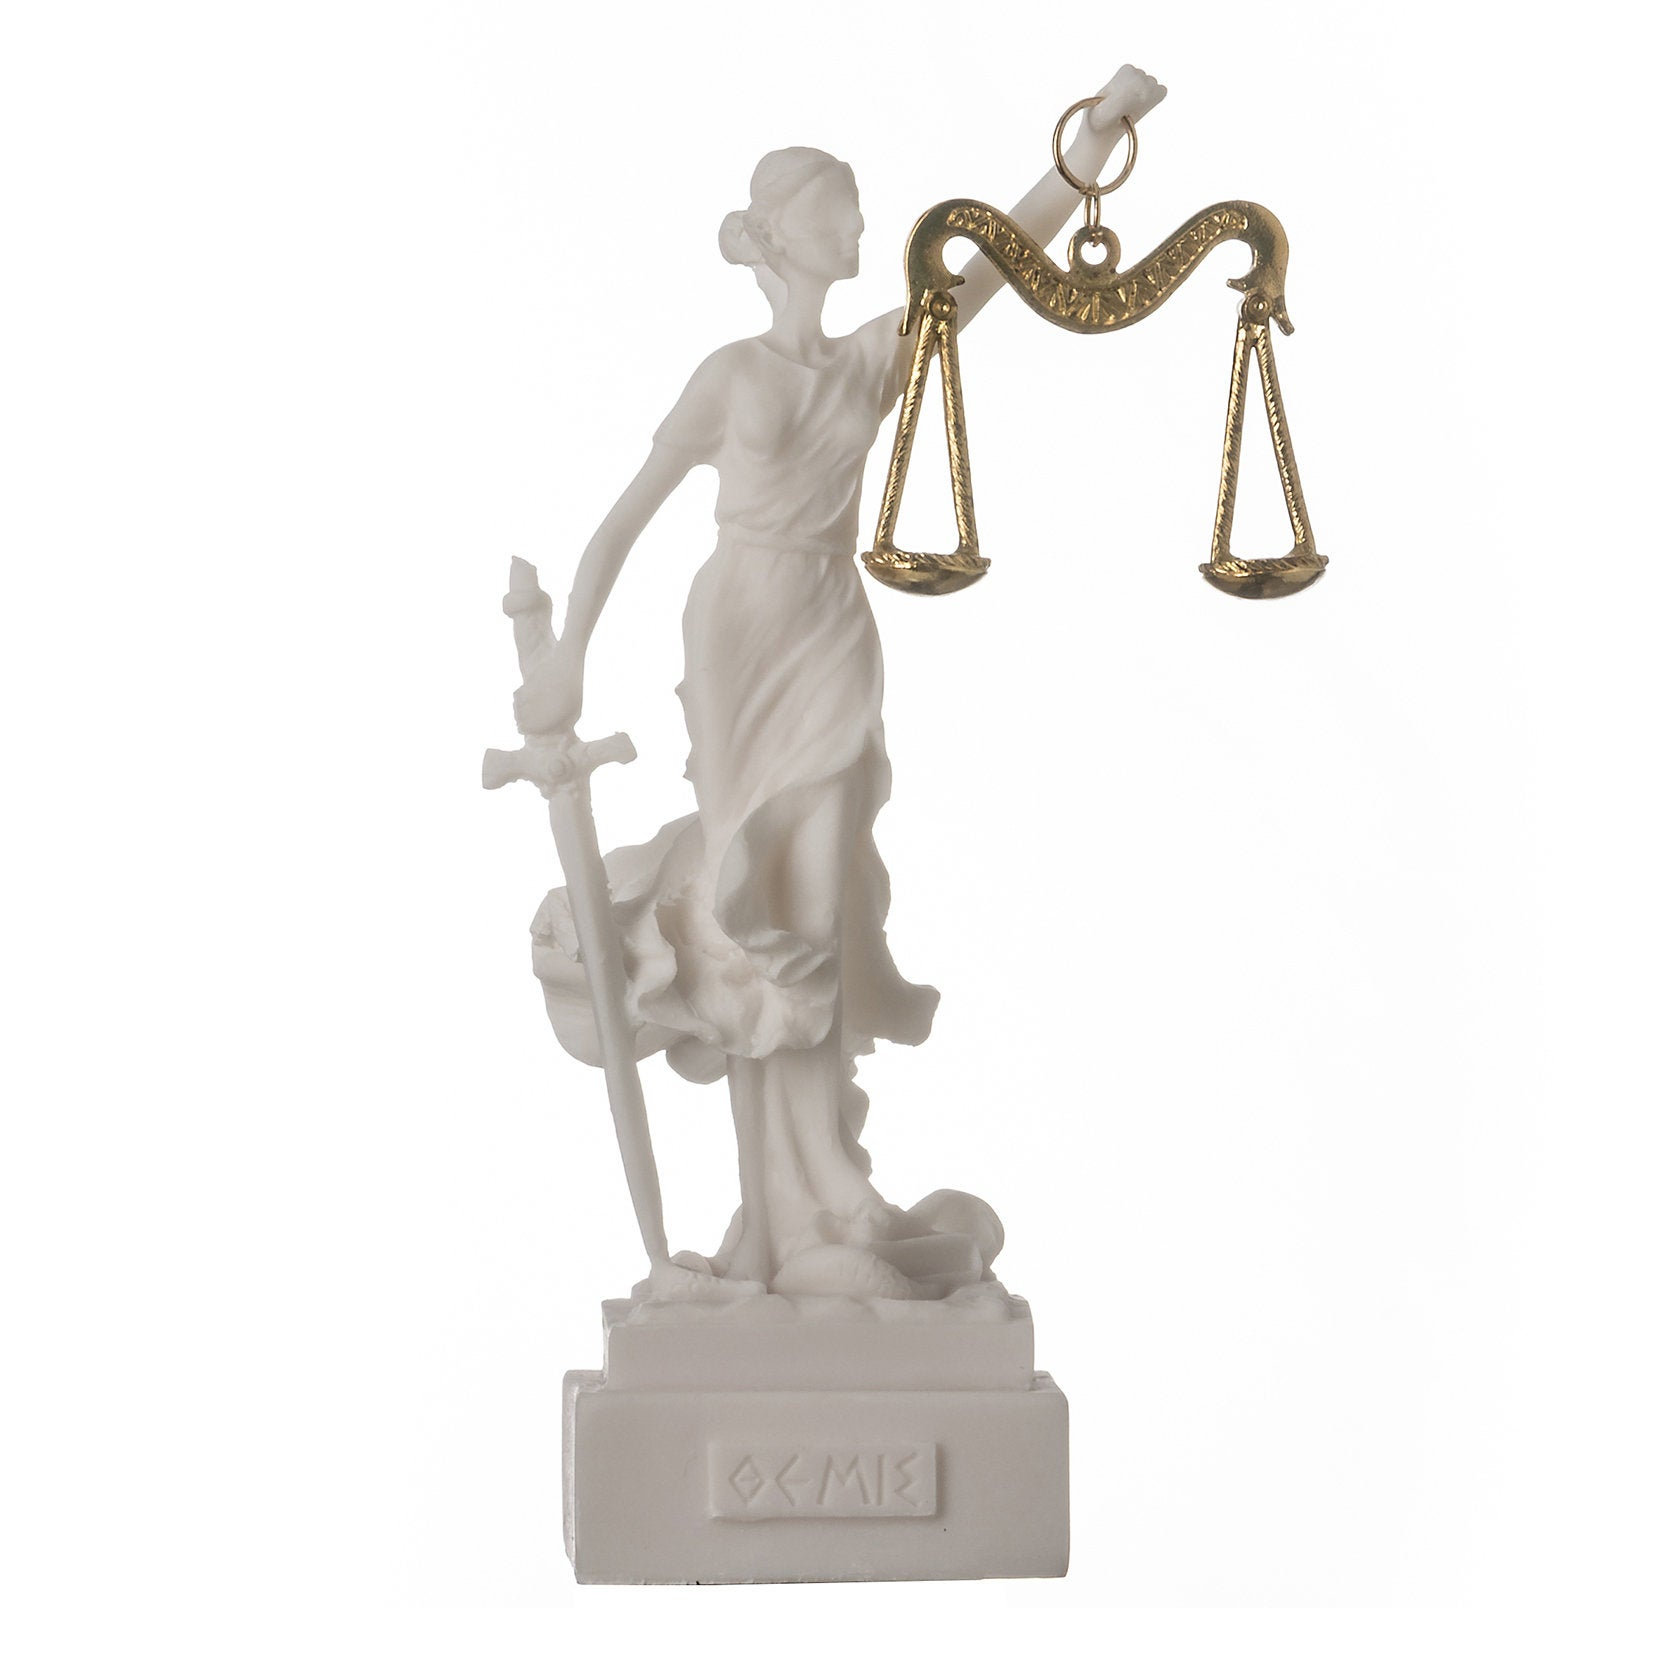 """Greek goddess themis statue figurine blind lady justice sculpture lawyer gift 5.5"""" 14cm square base"""